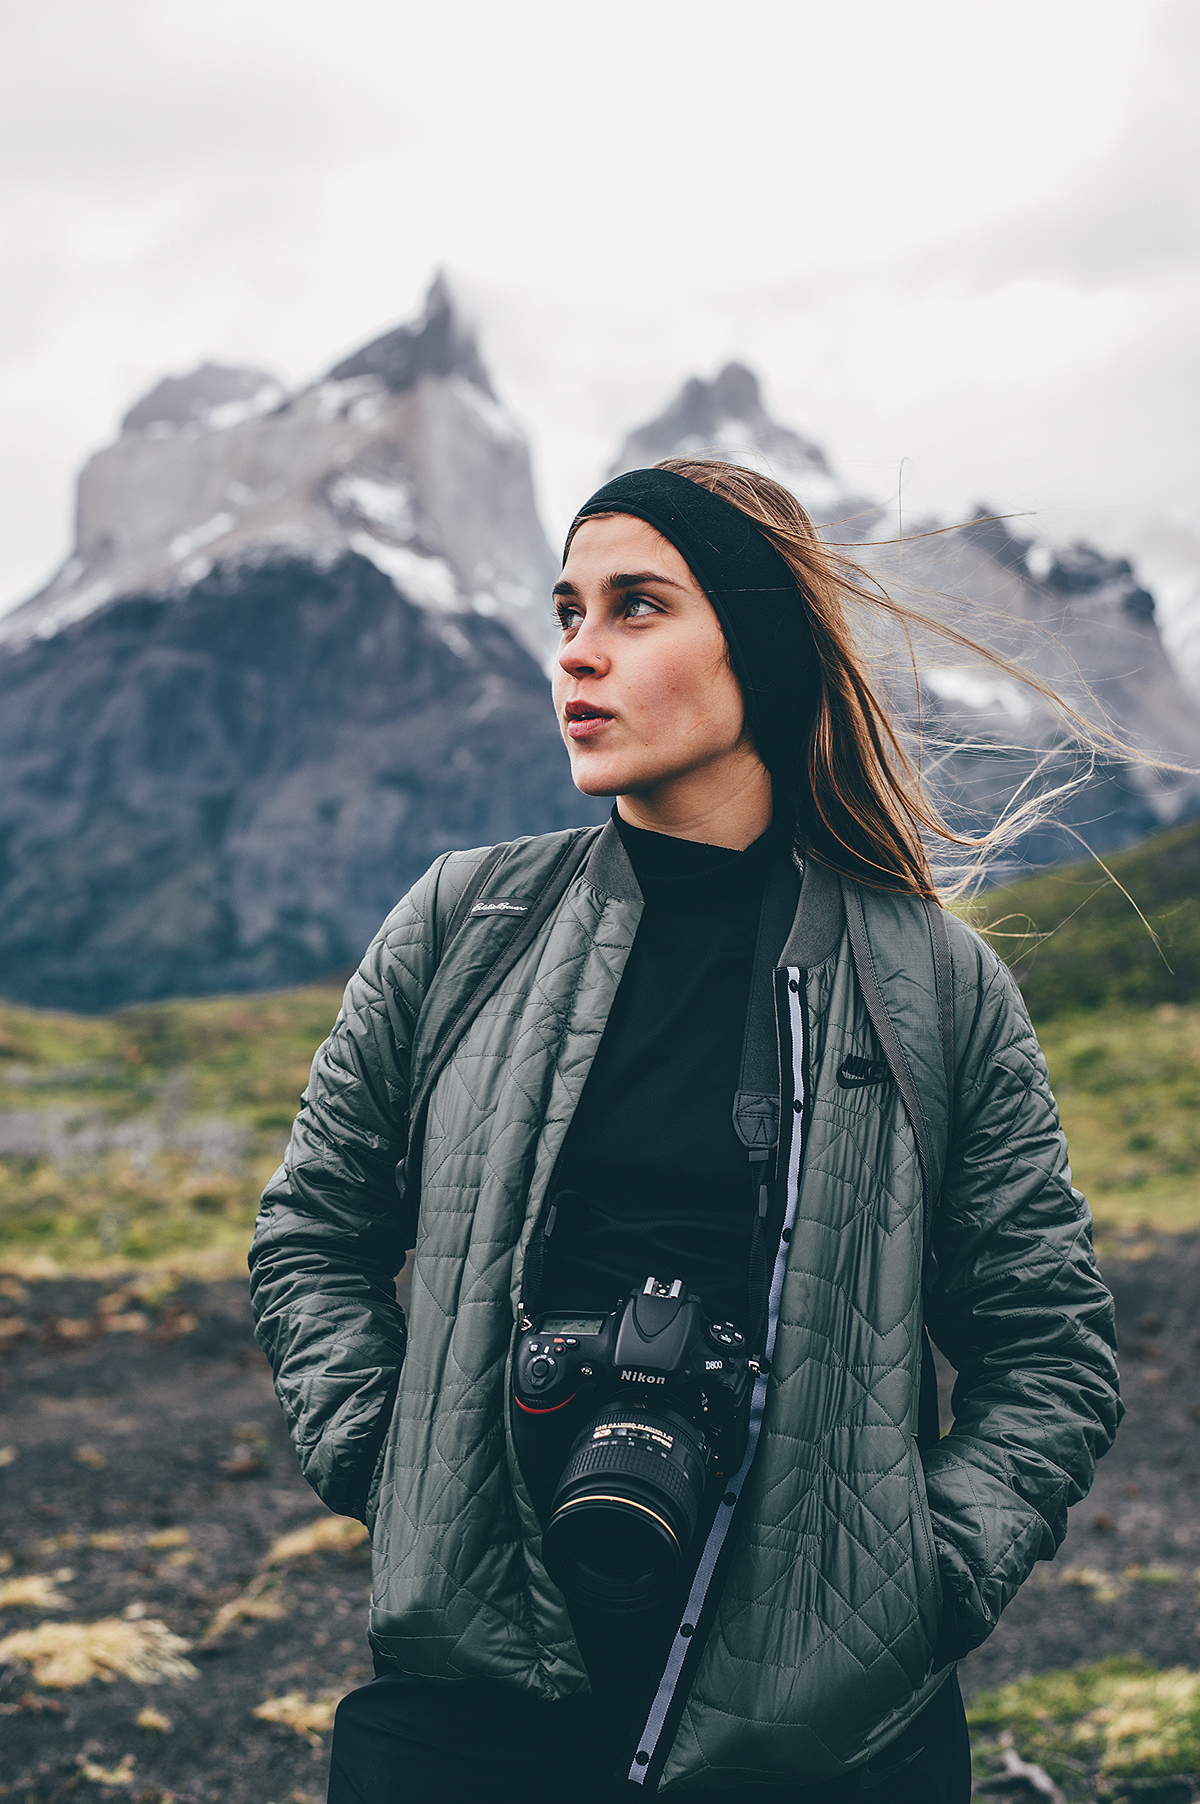 Irjaliina Paavonpera - Born in Queensland, Australia, and raised in the American Northeast, the desire to be surrounded by nature runs through Irjaliina's veins. She is a landscape photographer and adventure seeker based in Brooklyn, NY, and is always willing to travel.Website